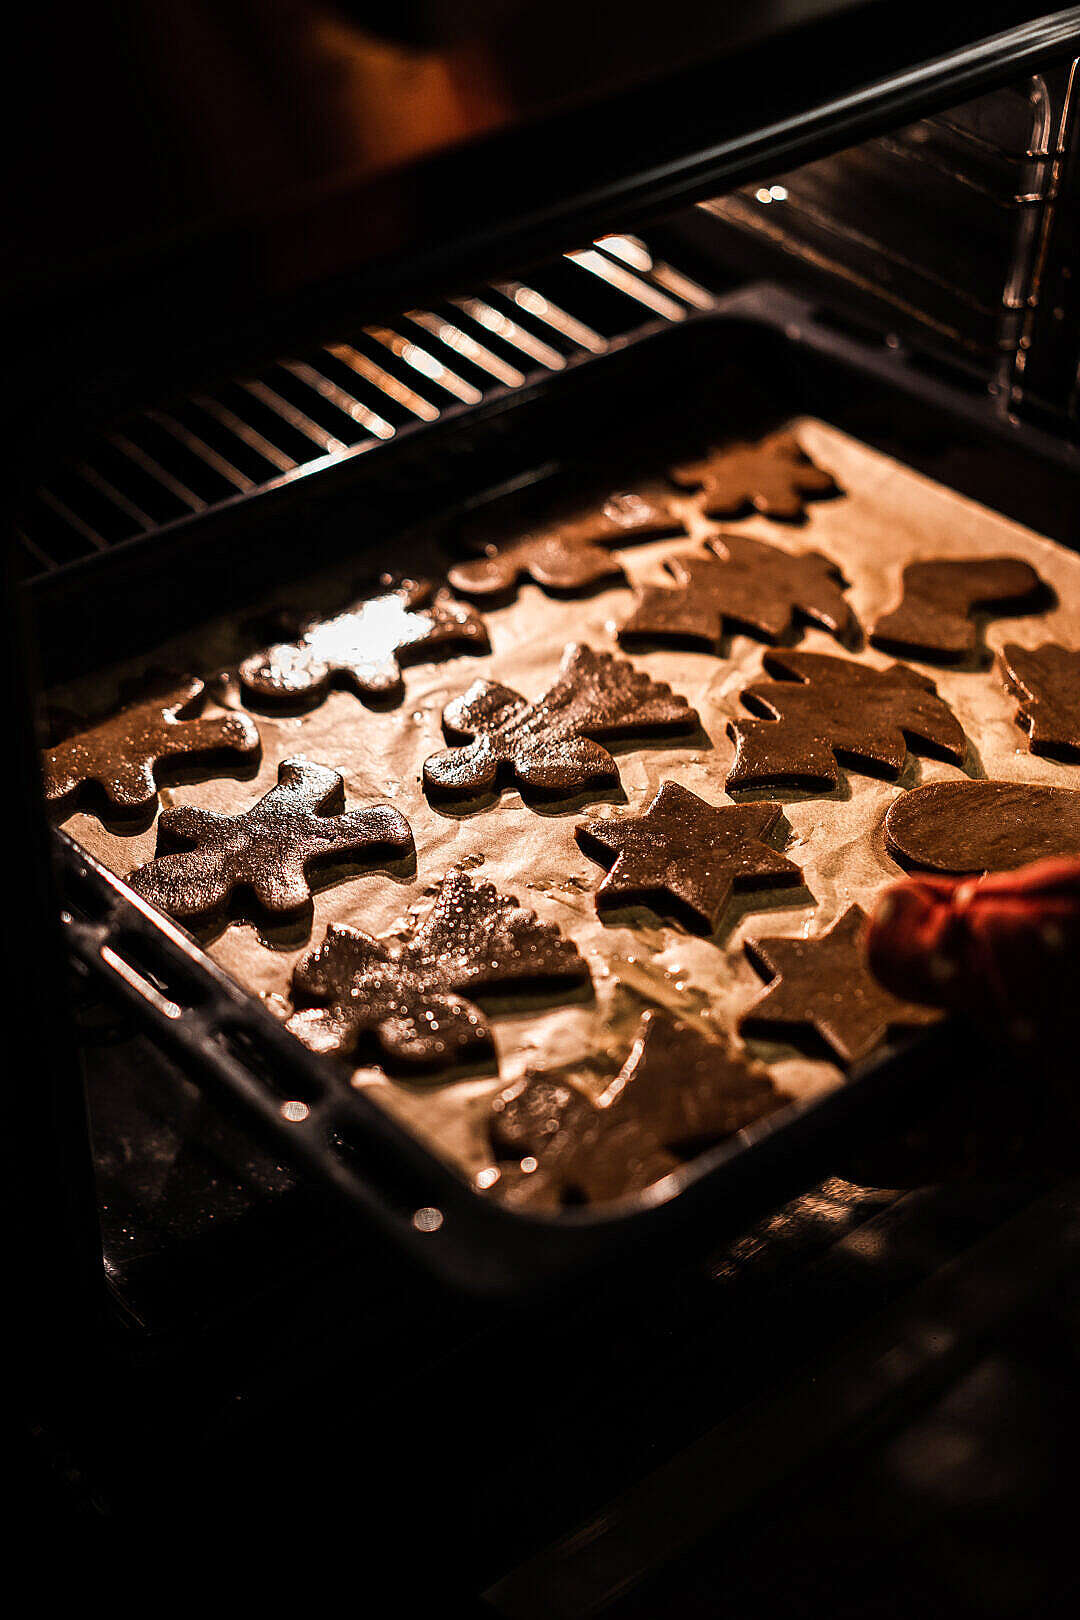 Download Baking Gingerbread Cookies FREE Stock Photo